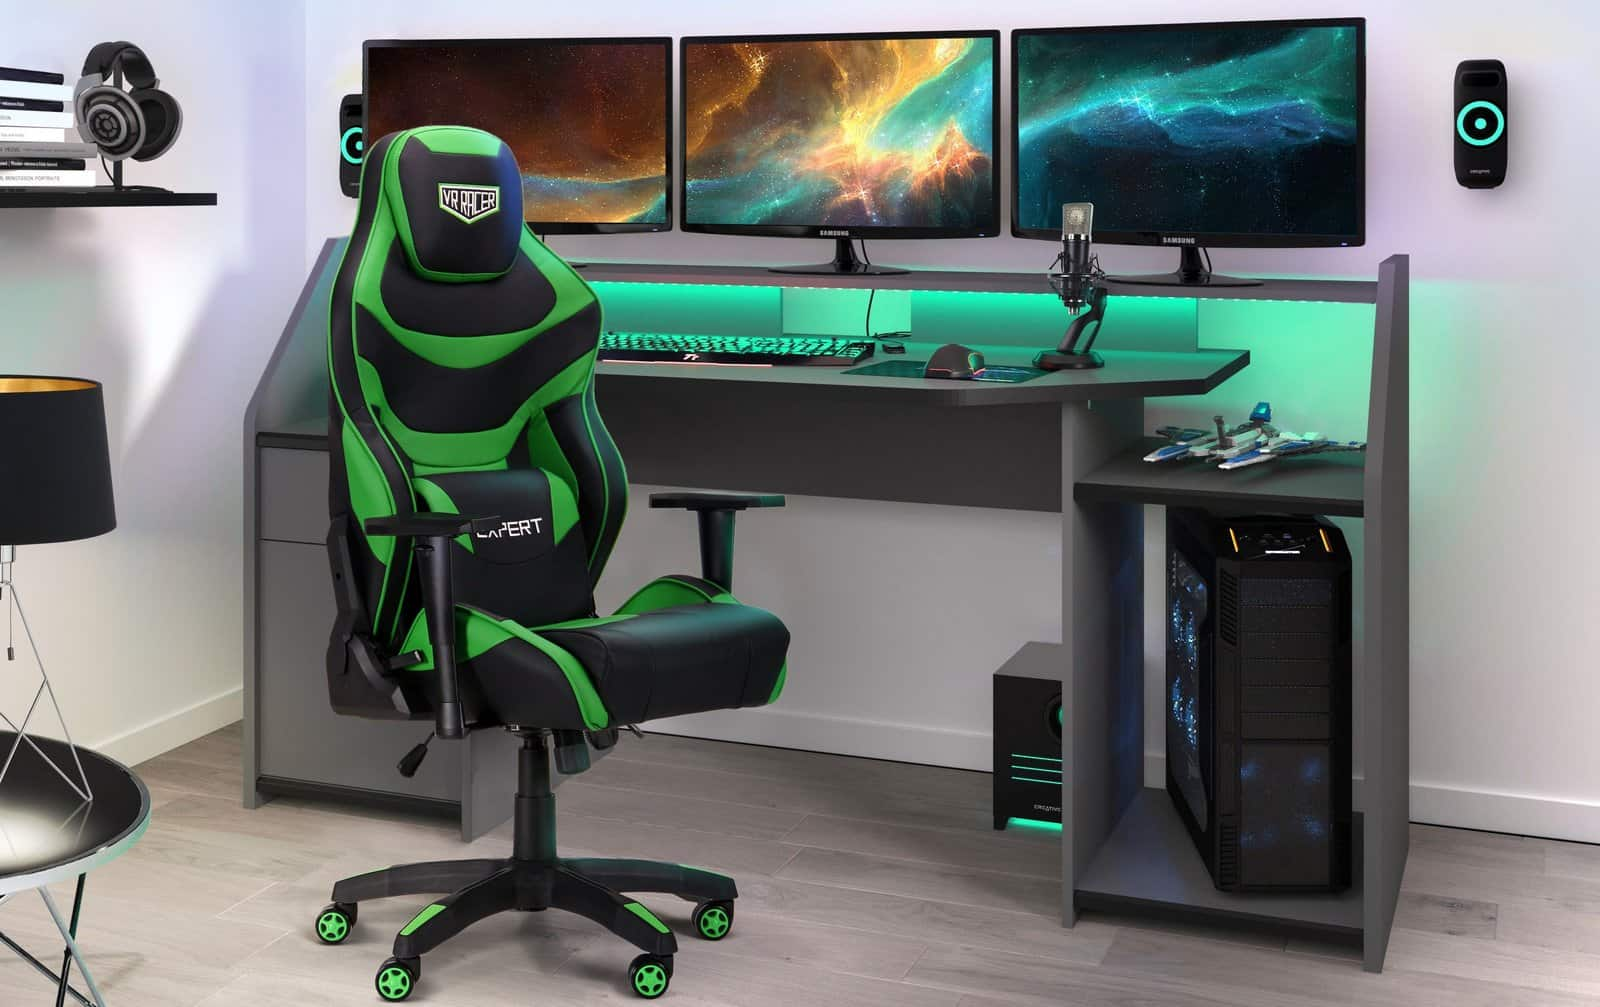 Designing a Gaming Den for the Kids - 5 Things You Need. LED lighting and gaming chair for full-fledged playground